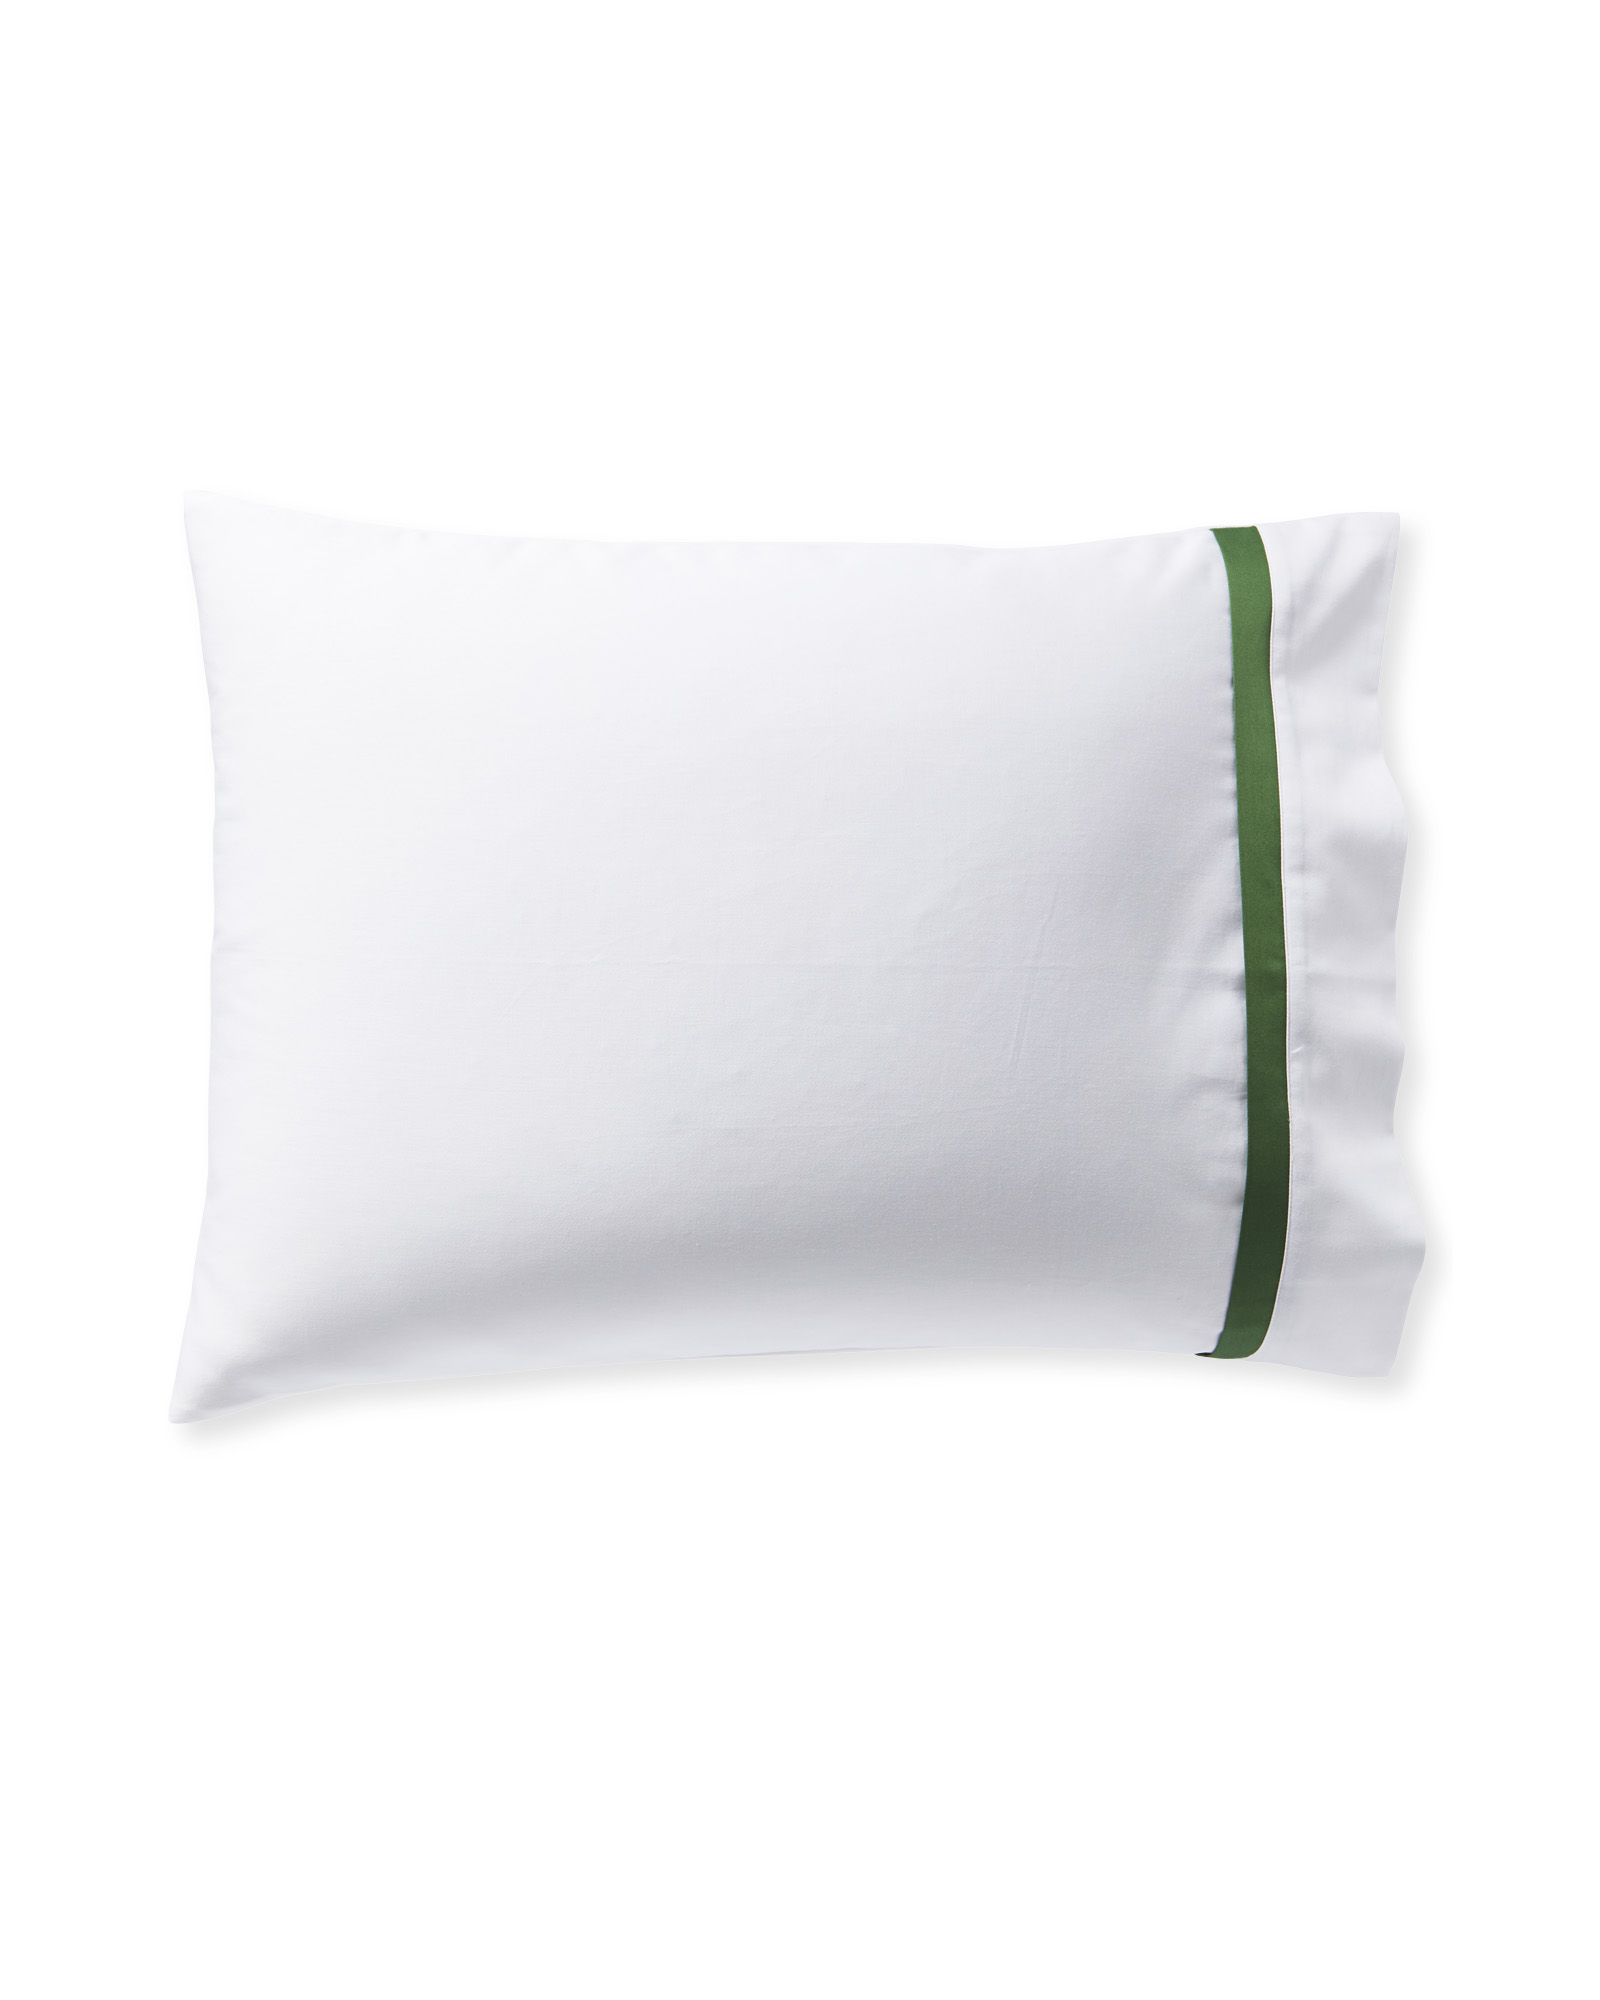 Border Frame Pillowcases (Set of 2), Moss